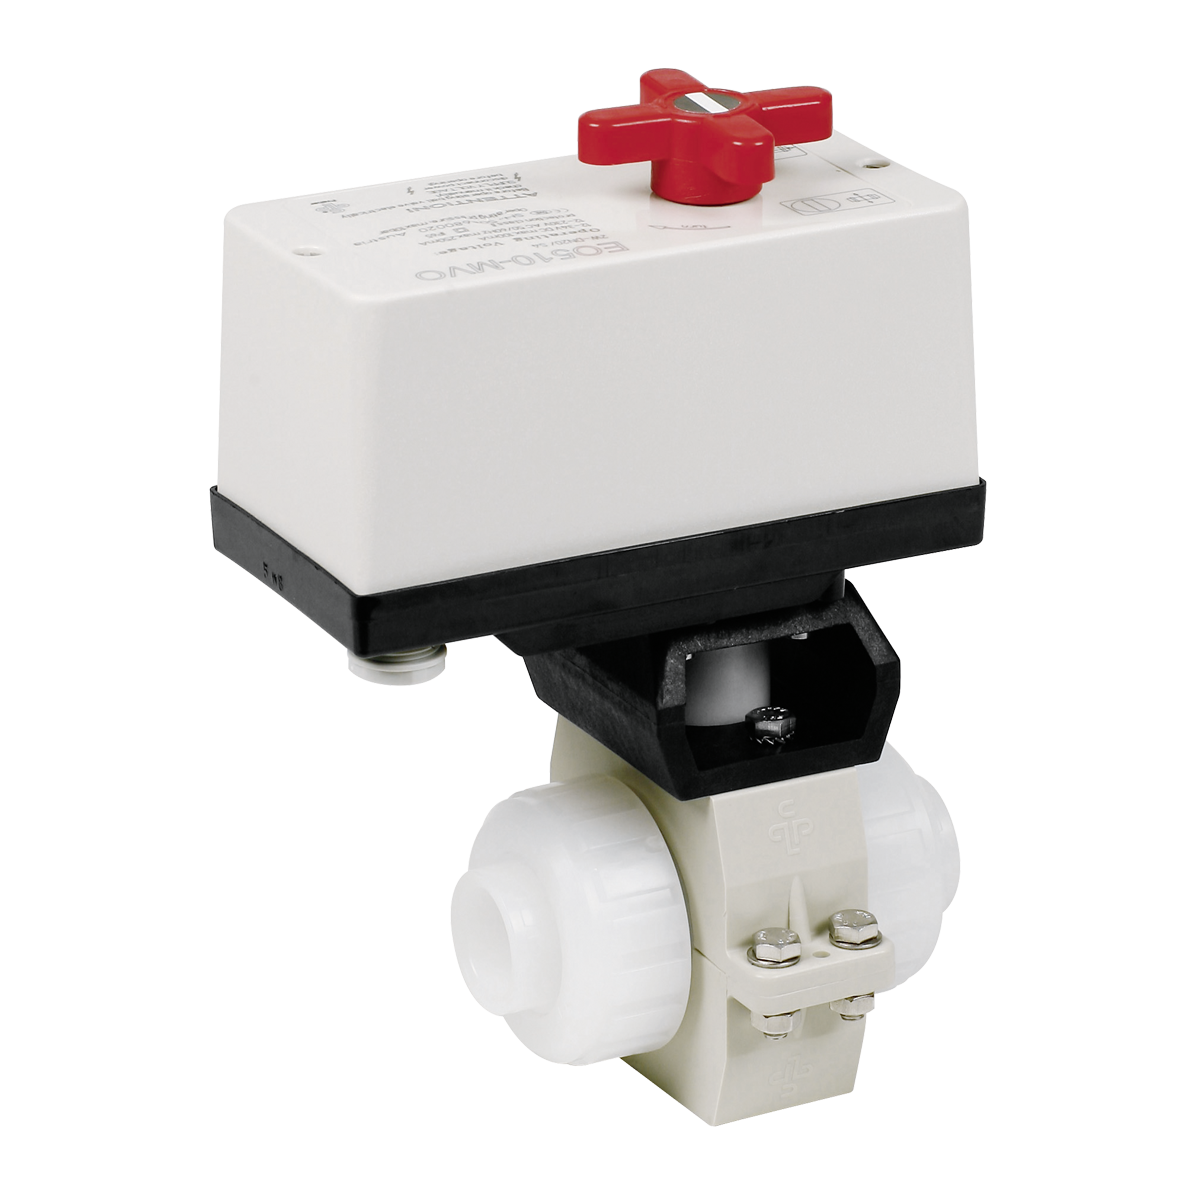 Praher 2-way ball valve S4 PVDF with EO510 actuator, white, black, red